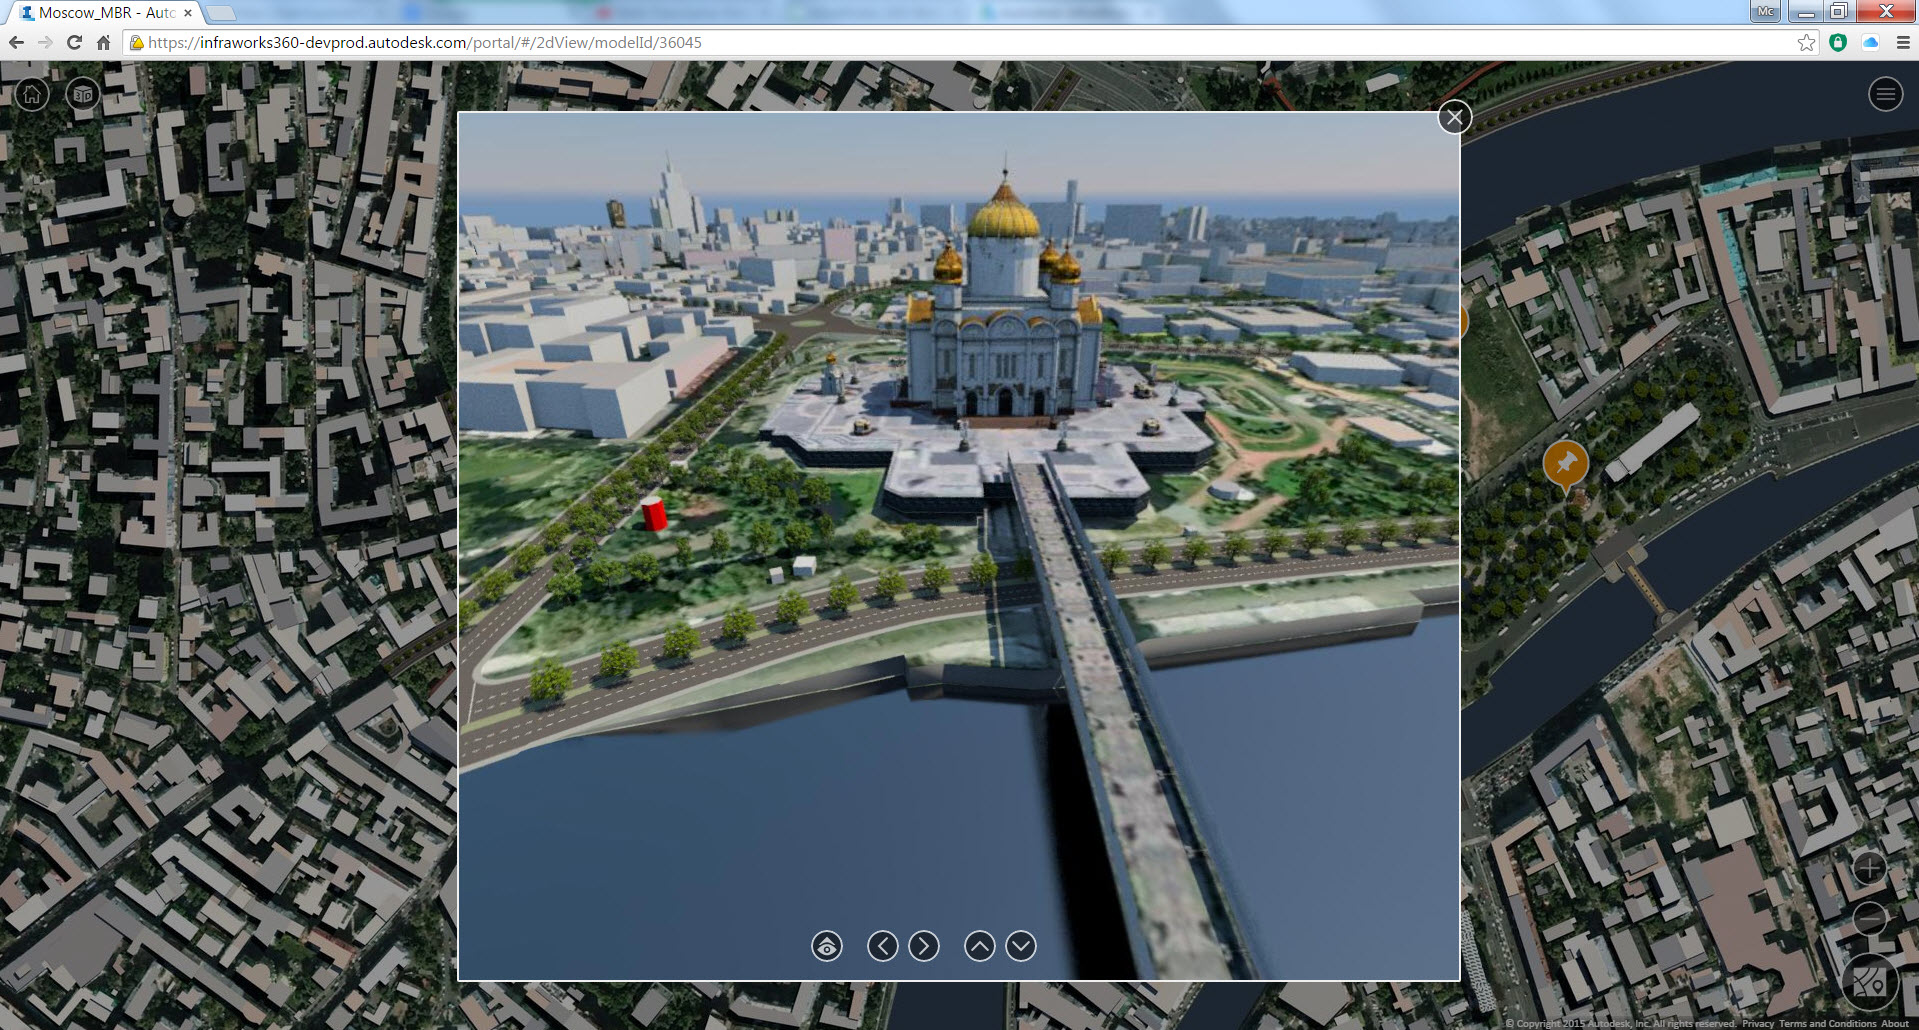 Infraworks-360-web-moscow-1-3500-3500